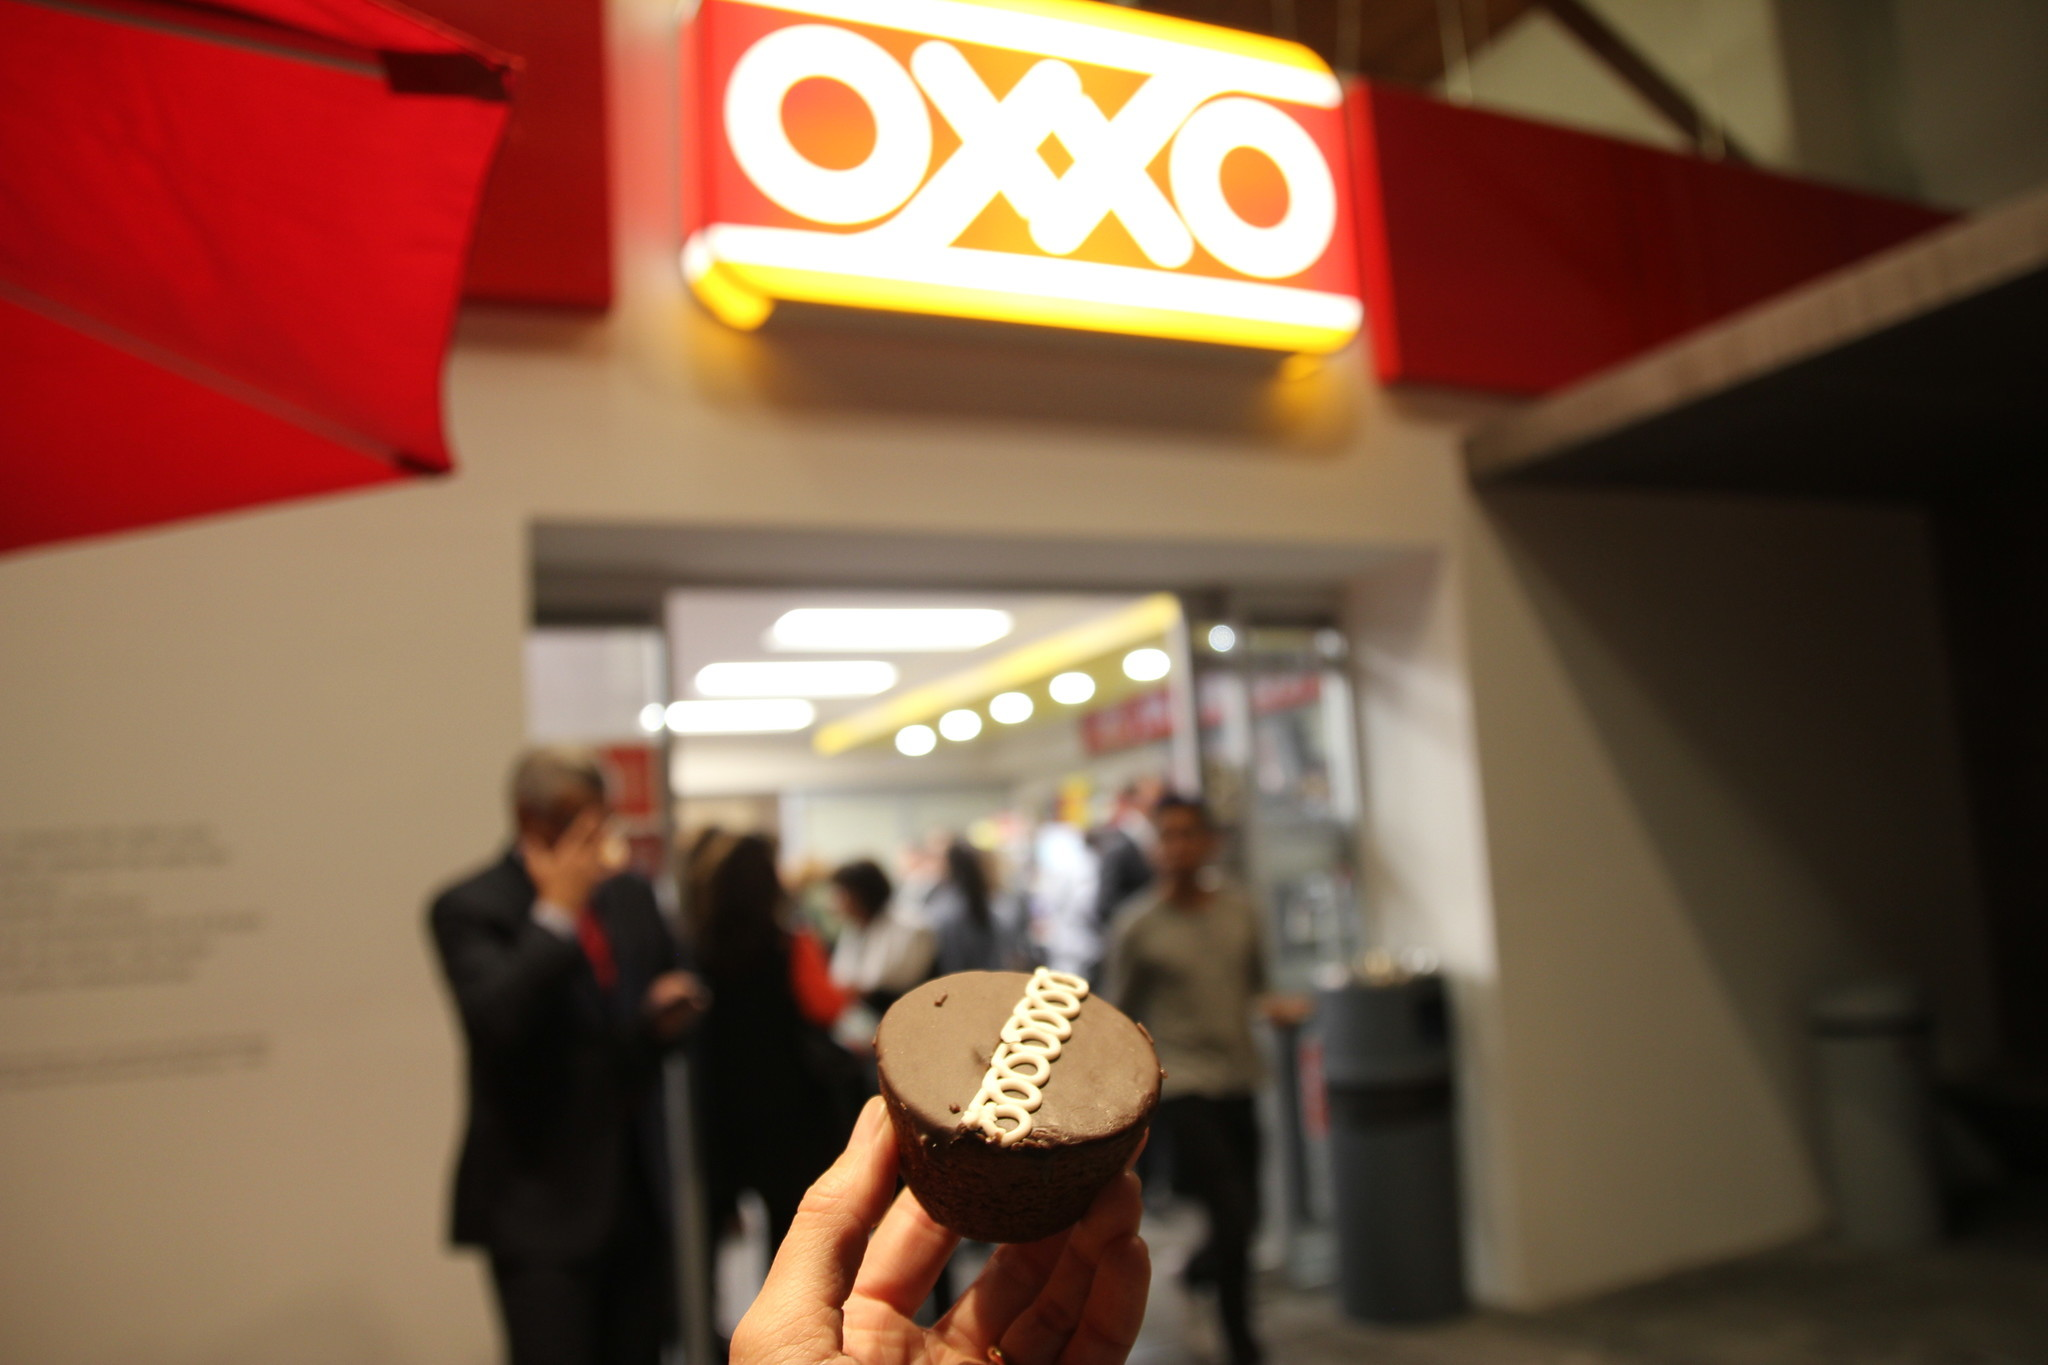 """A journalistic colleague used his """"Oroxxo"""" dollar on a bag of Pinguinos (chocolate cupcakes), which he shared with me. It paired well with all the air-kissing and white wine."""